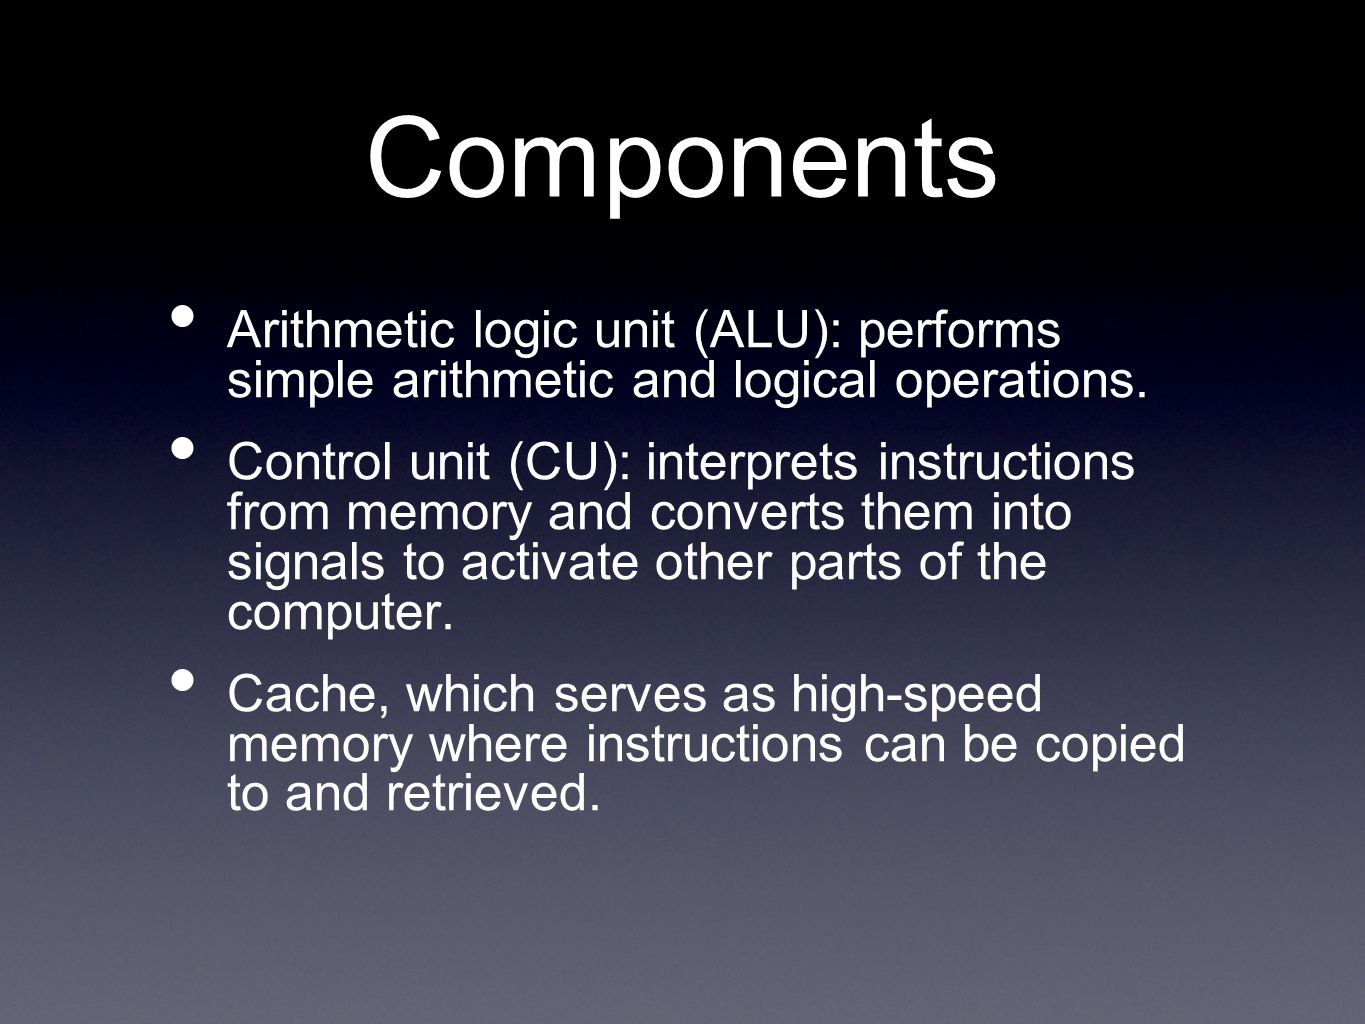 Components Arithmetic logic unit (ALU): performs simple arithmetic and logical operations. Control unit (CU): interprets instructions from memory and